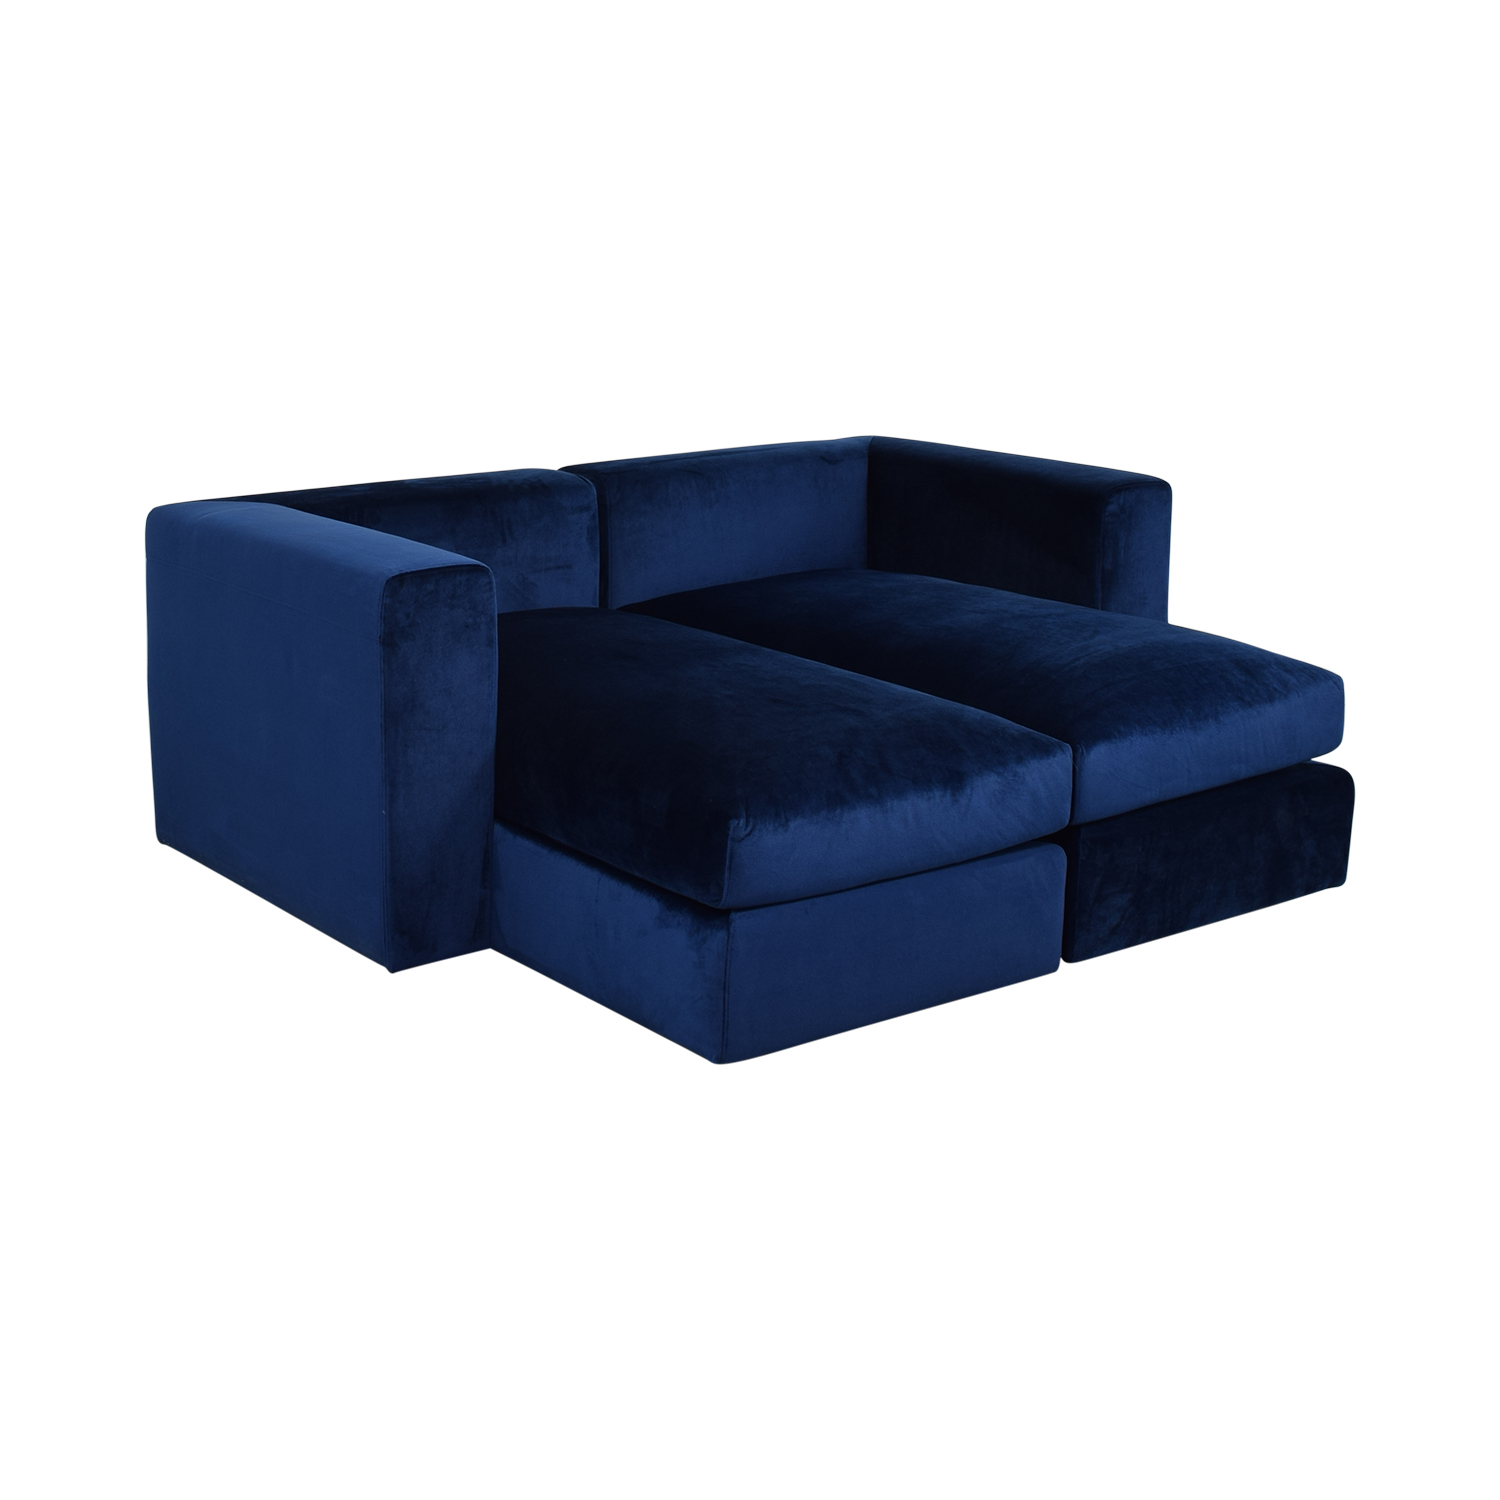 Interior Define Toby Velvet Oxford Blue Double Chaise Sectional Sofa on sale